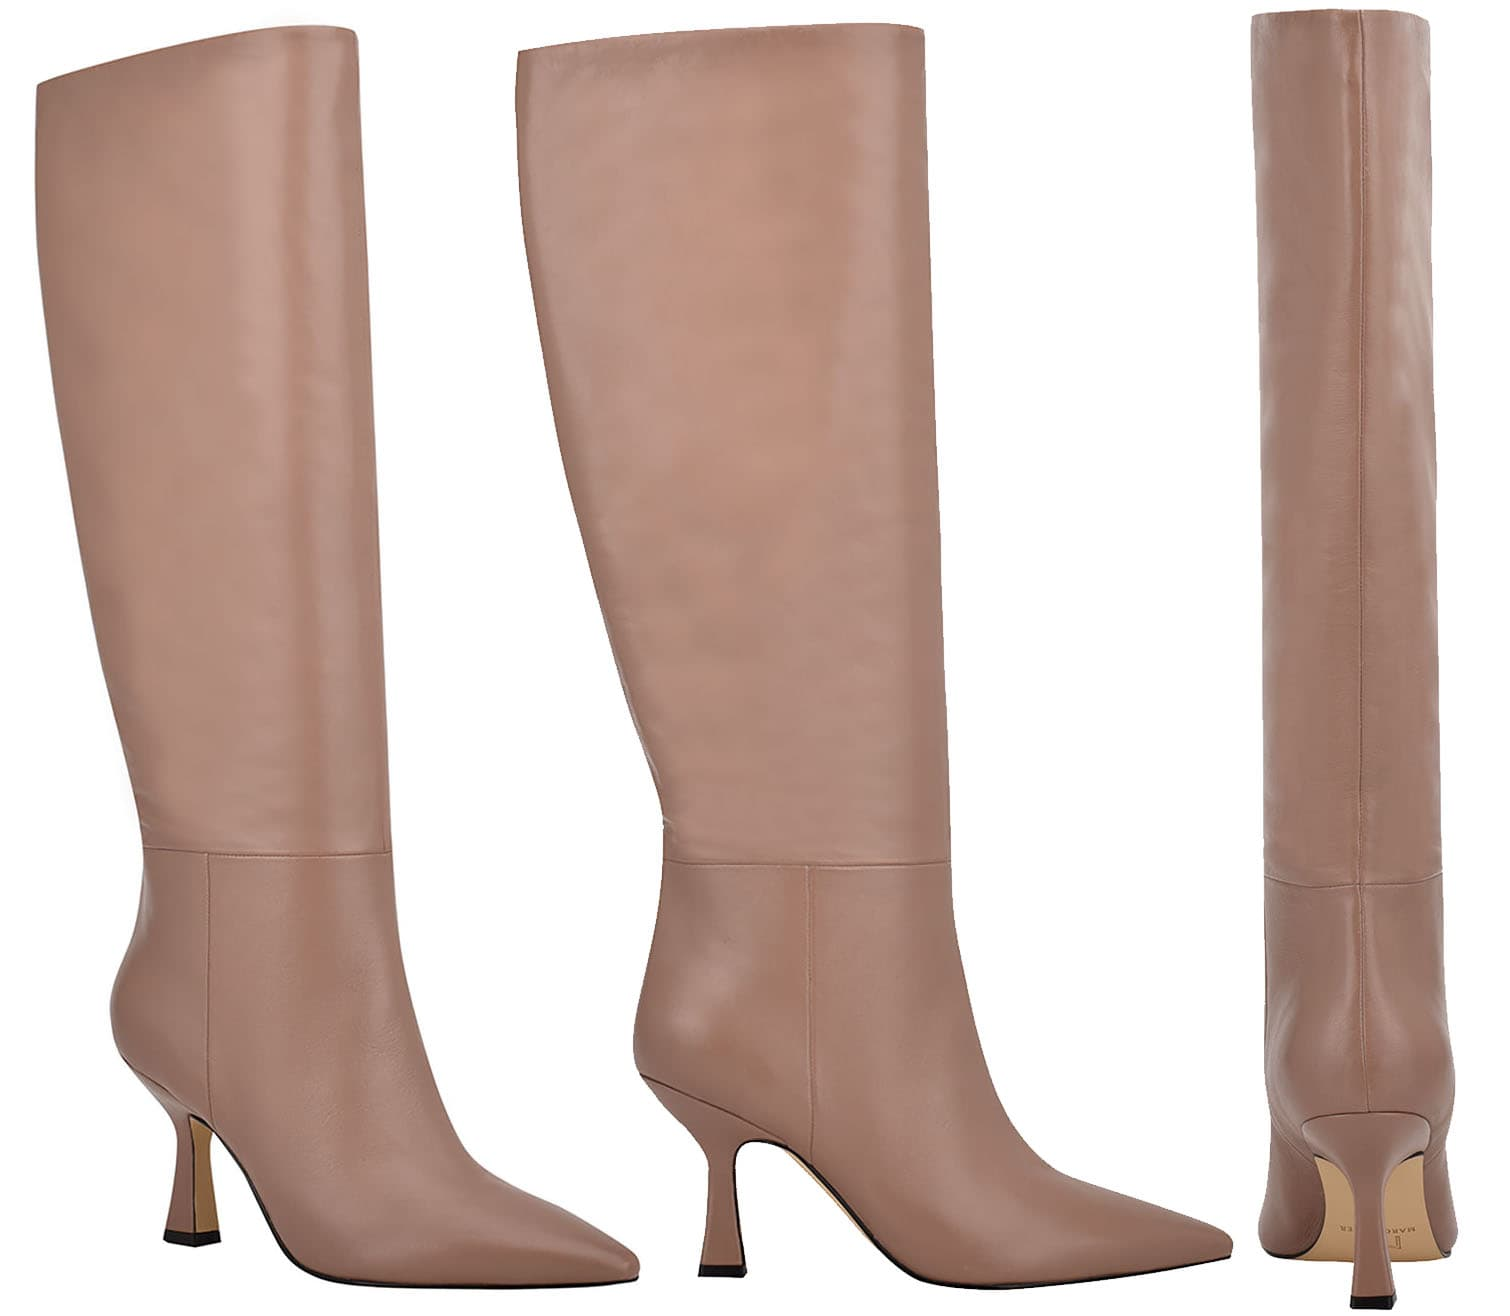 Slip into a pair of Marc Fisher Hallie knee-high boots and leggings for a perfect winter look